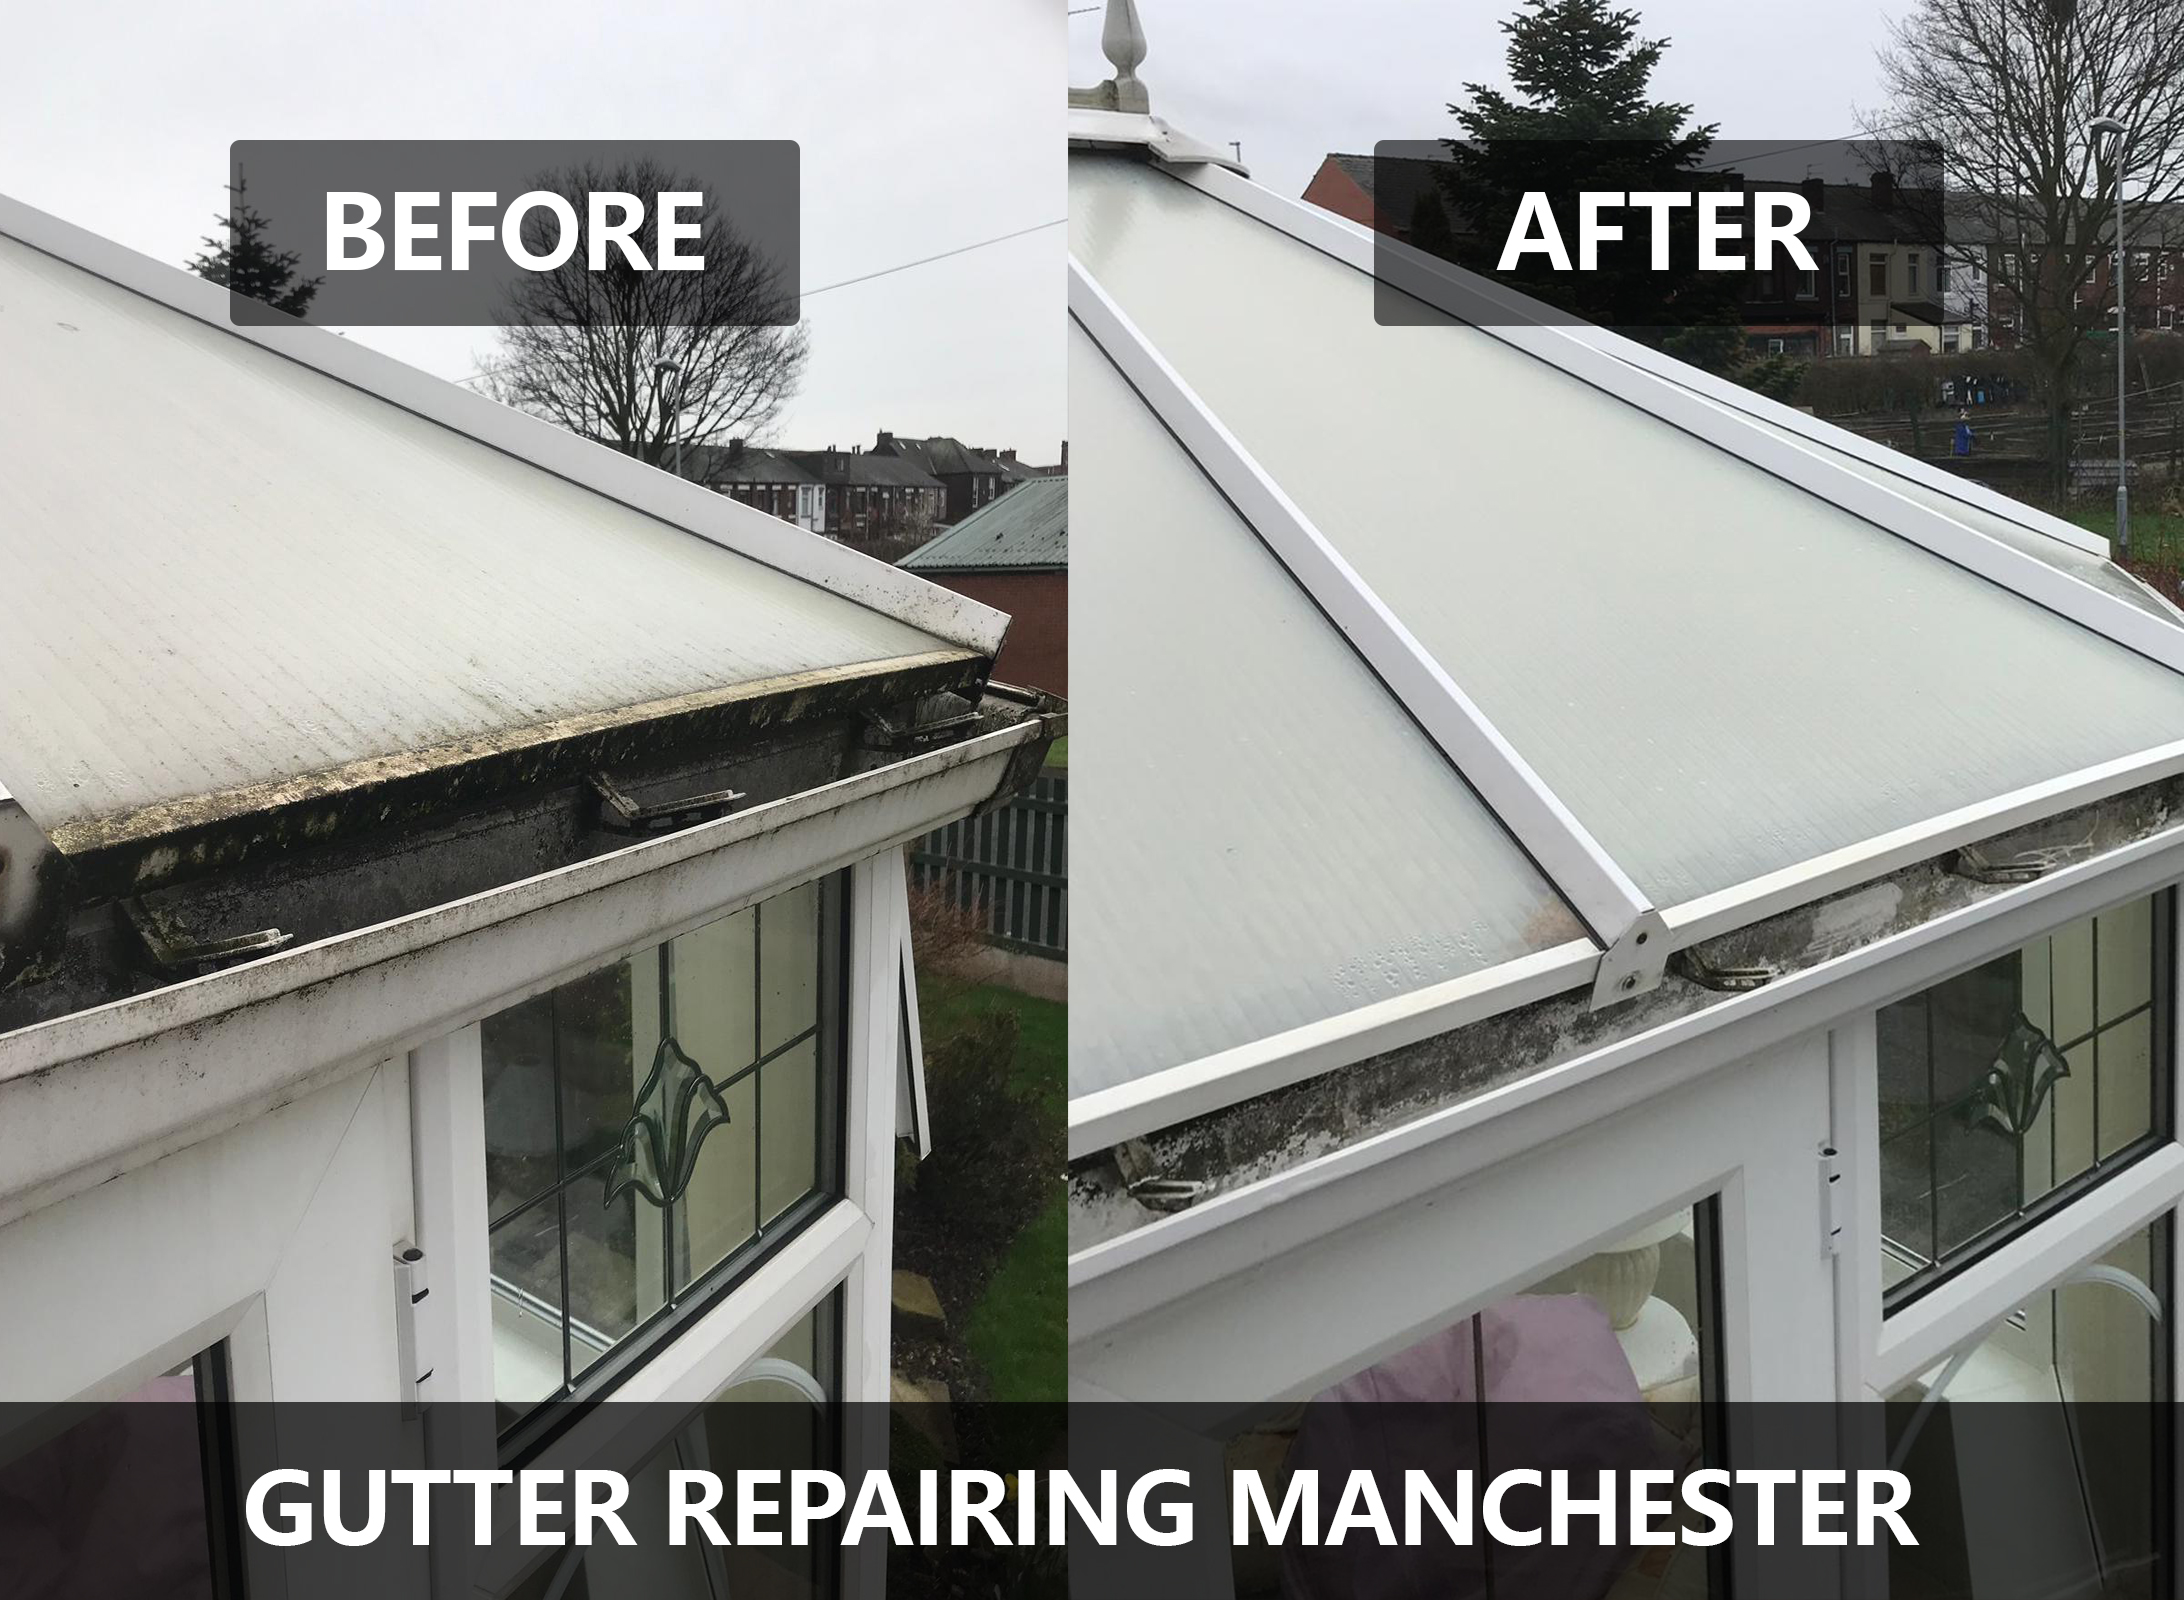 Gutter Repairing and Maintenance Manchester